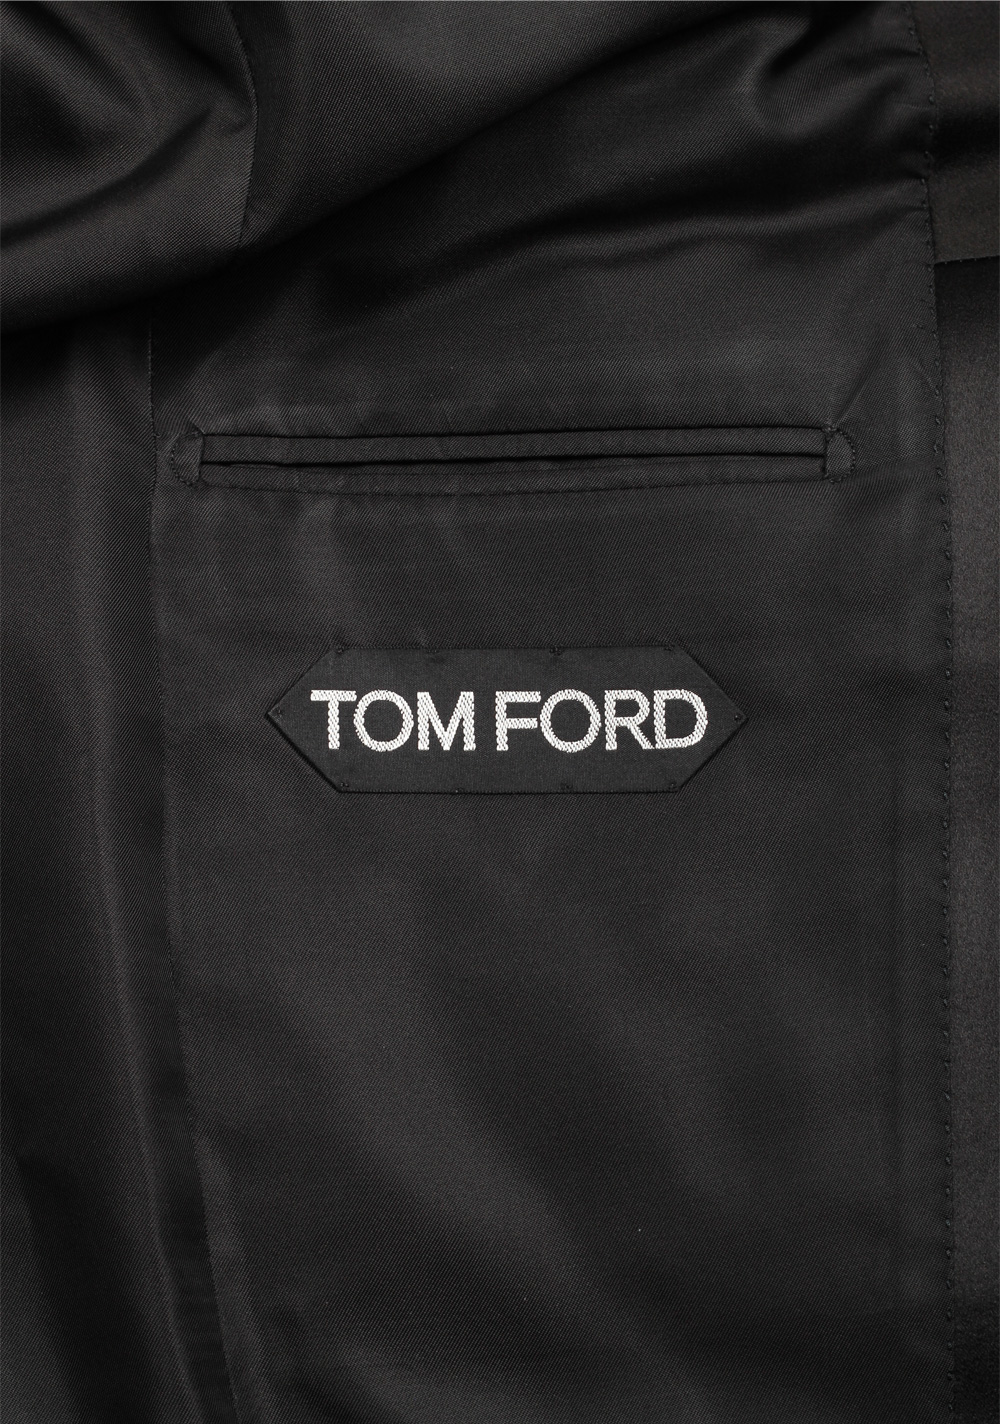 TOM FORD Atticus Black Tuxedo Cocktail Dinner Jacket | Costume Limité